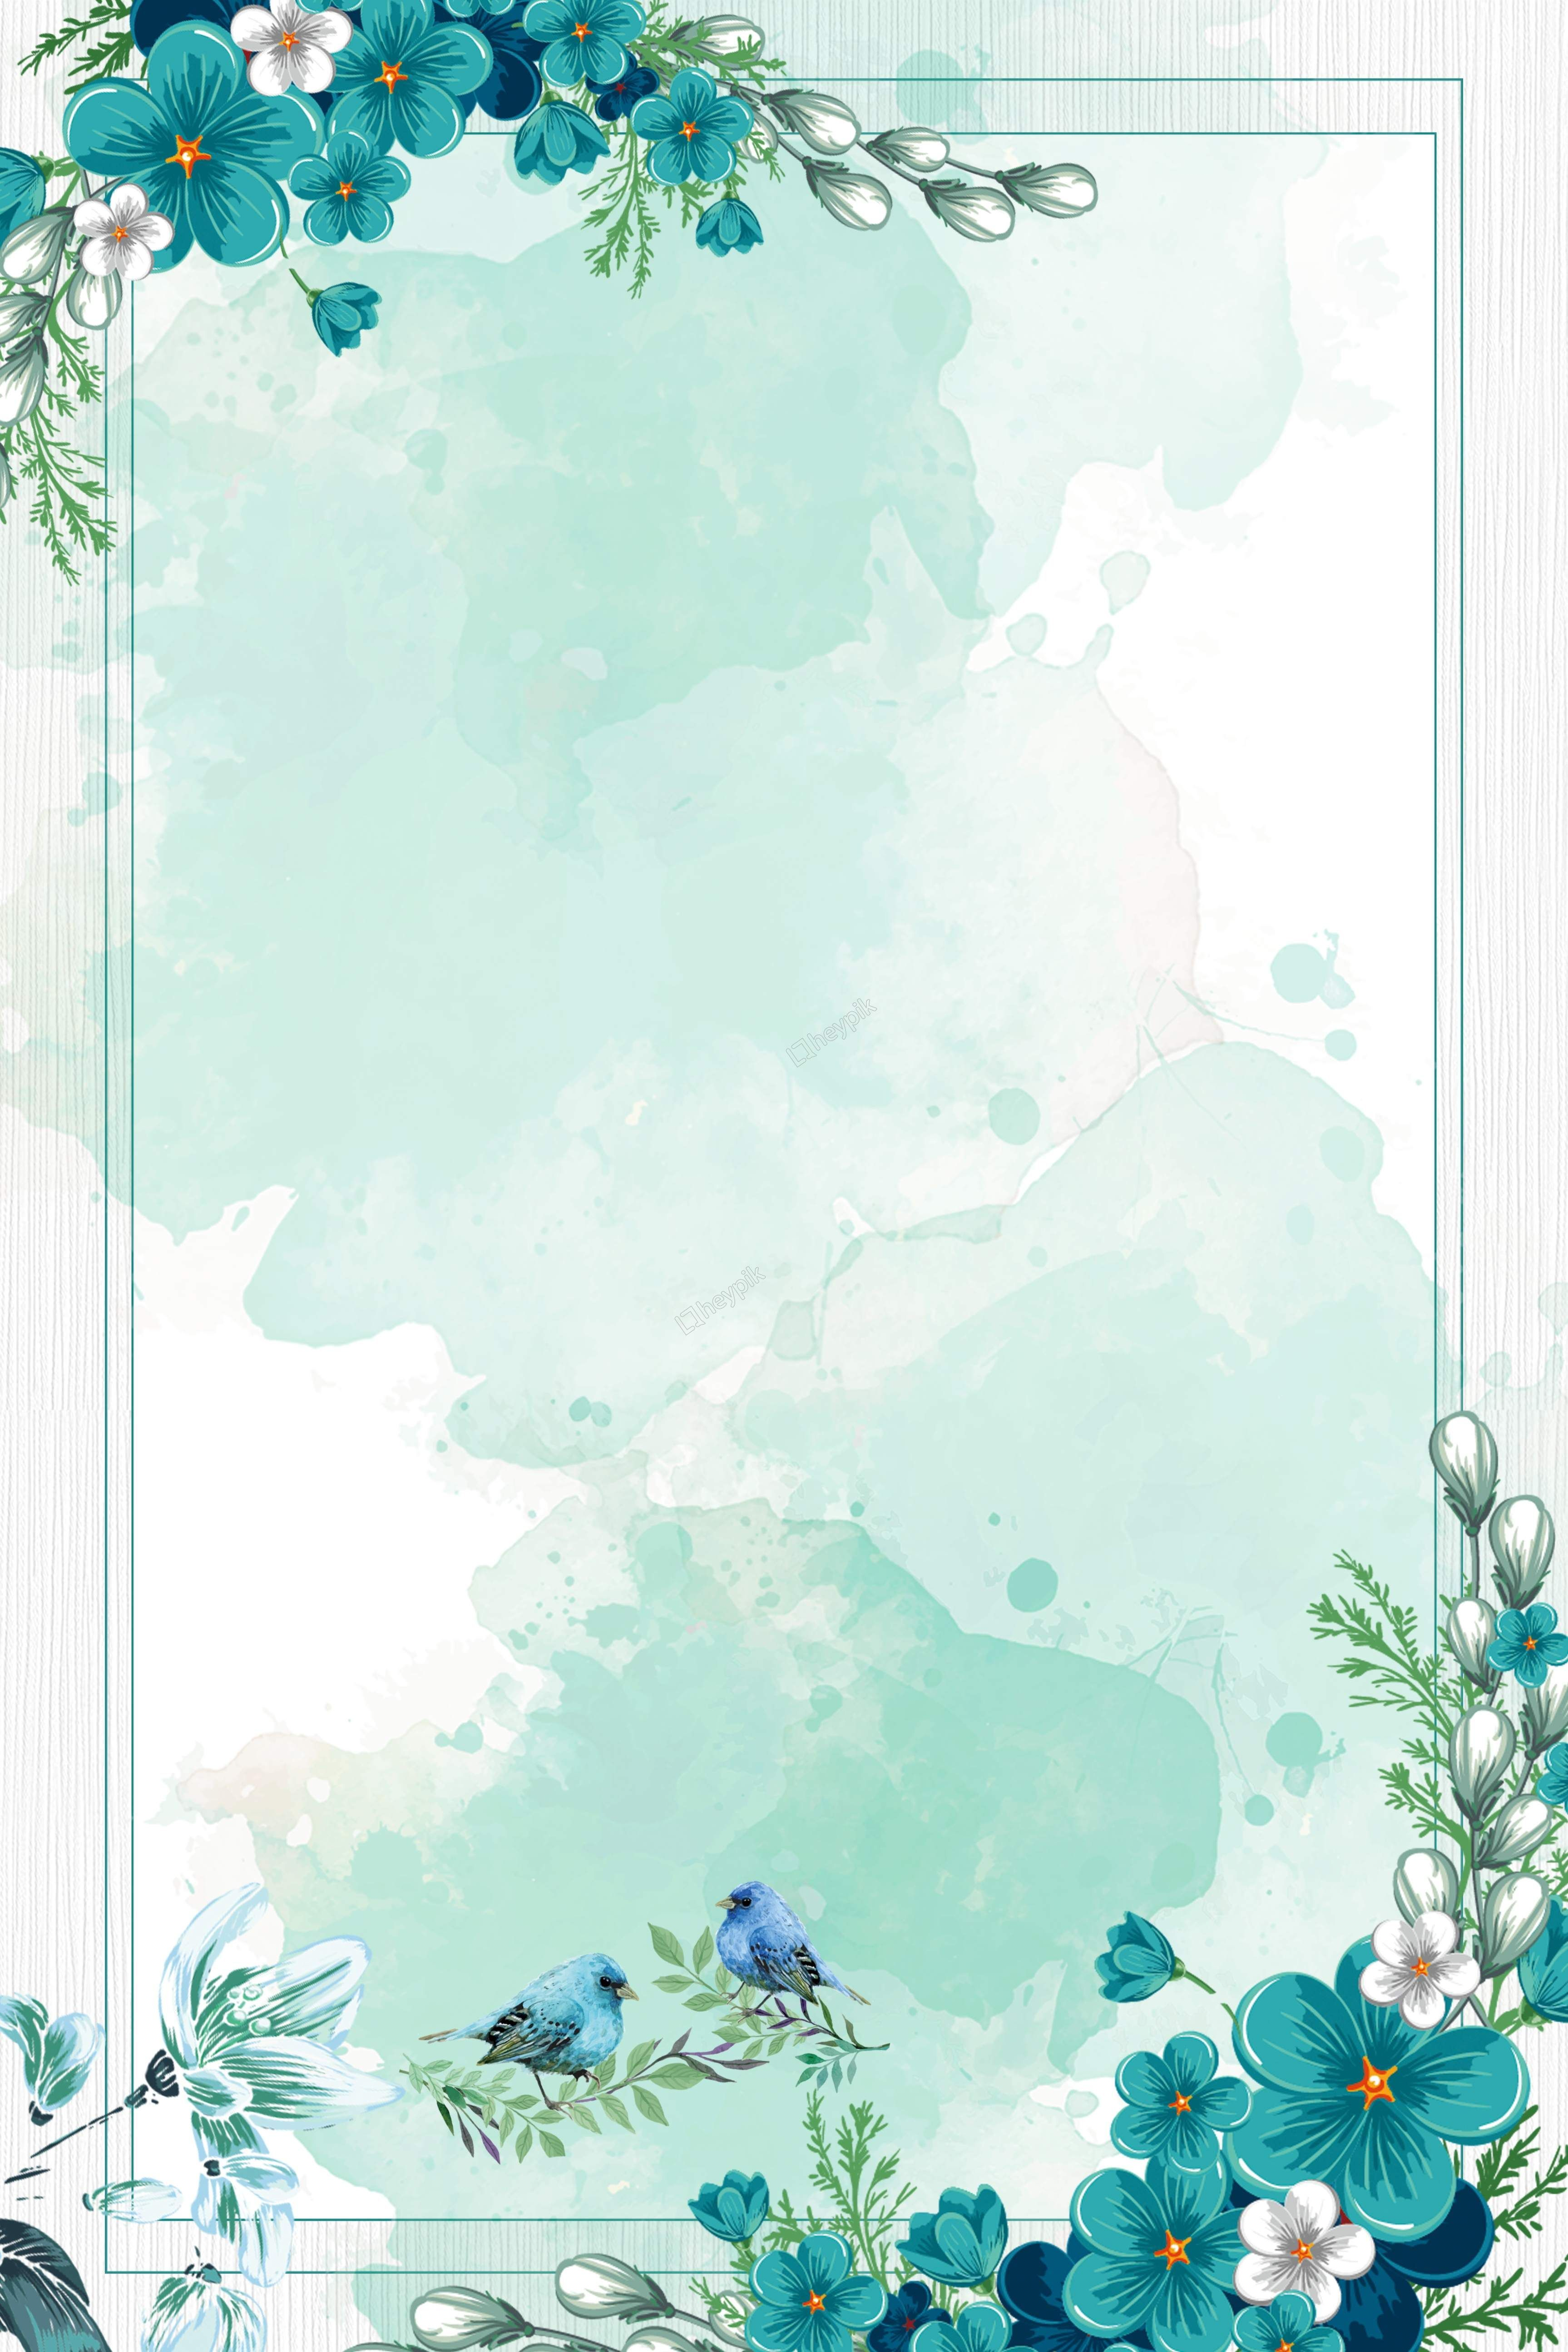 Chinese Style Watercolor Blue Flowers Border Background Vector